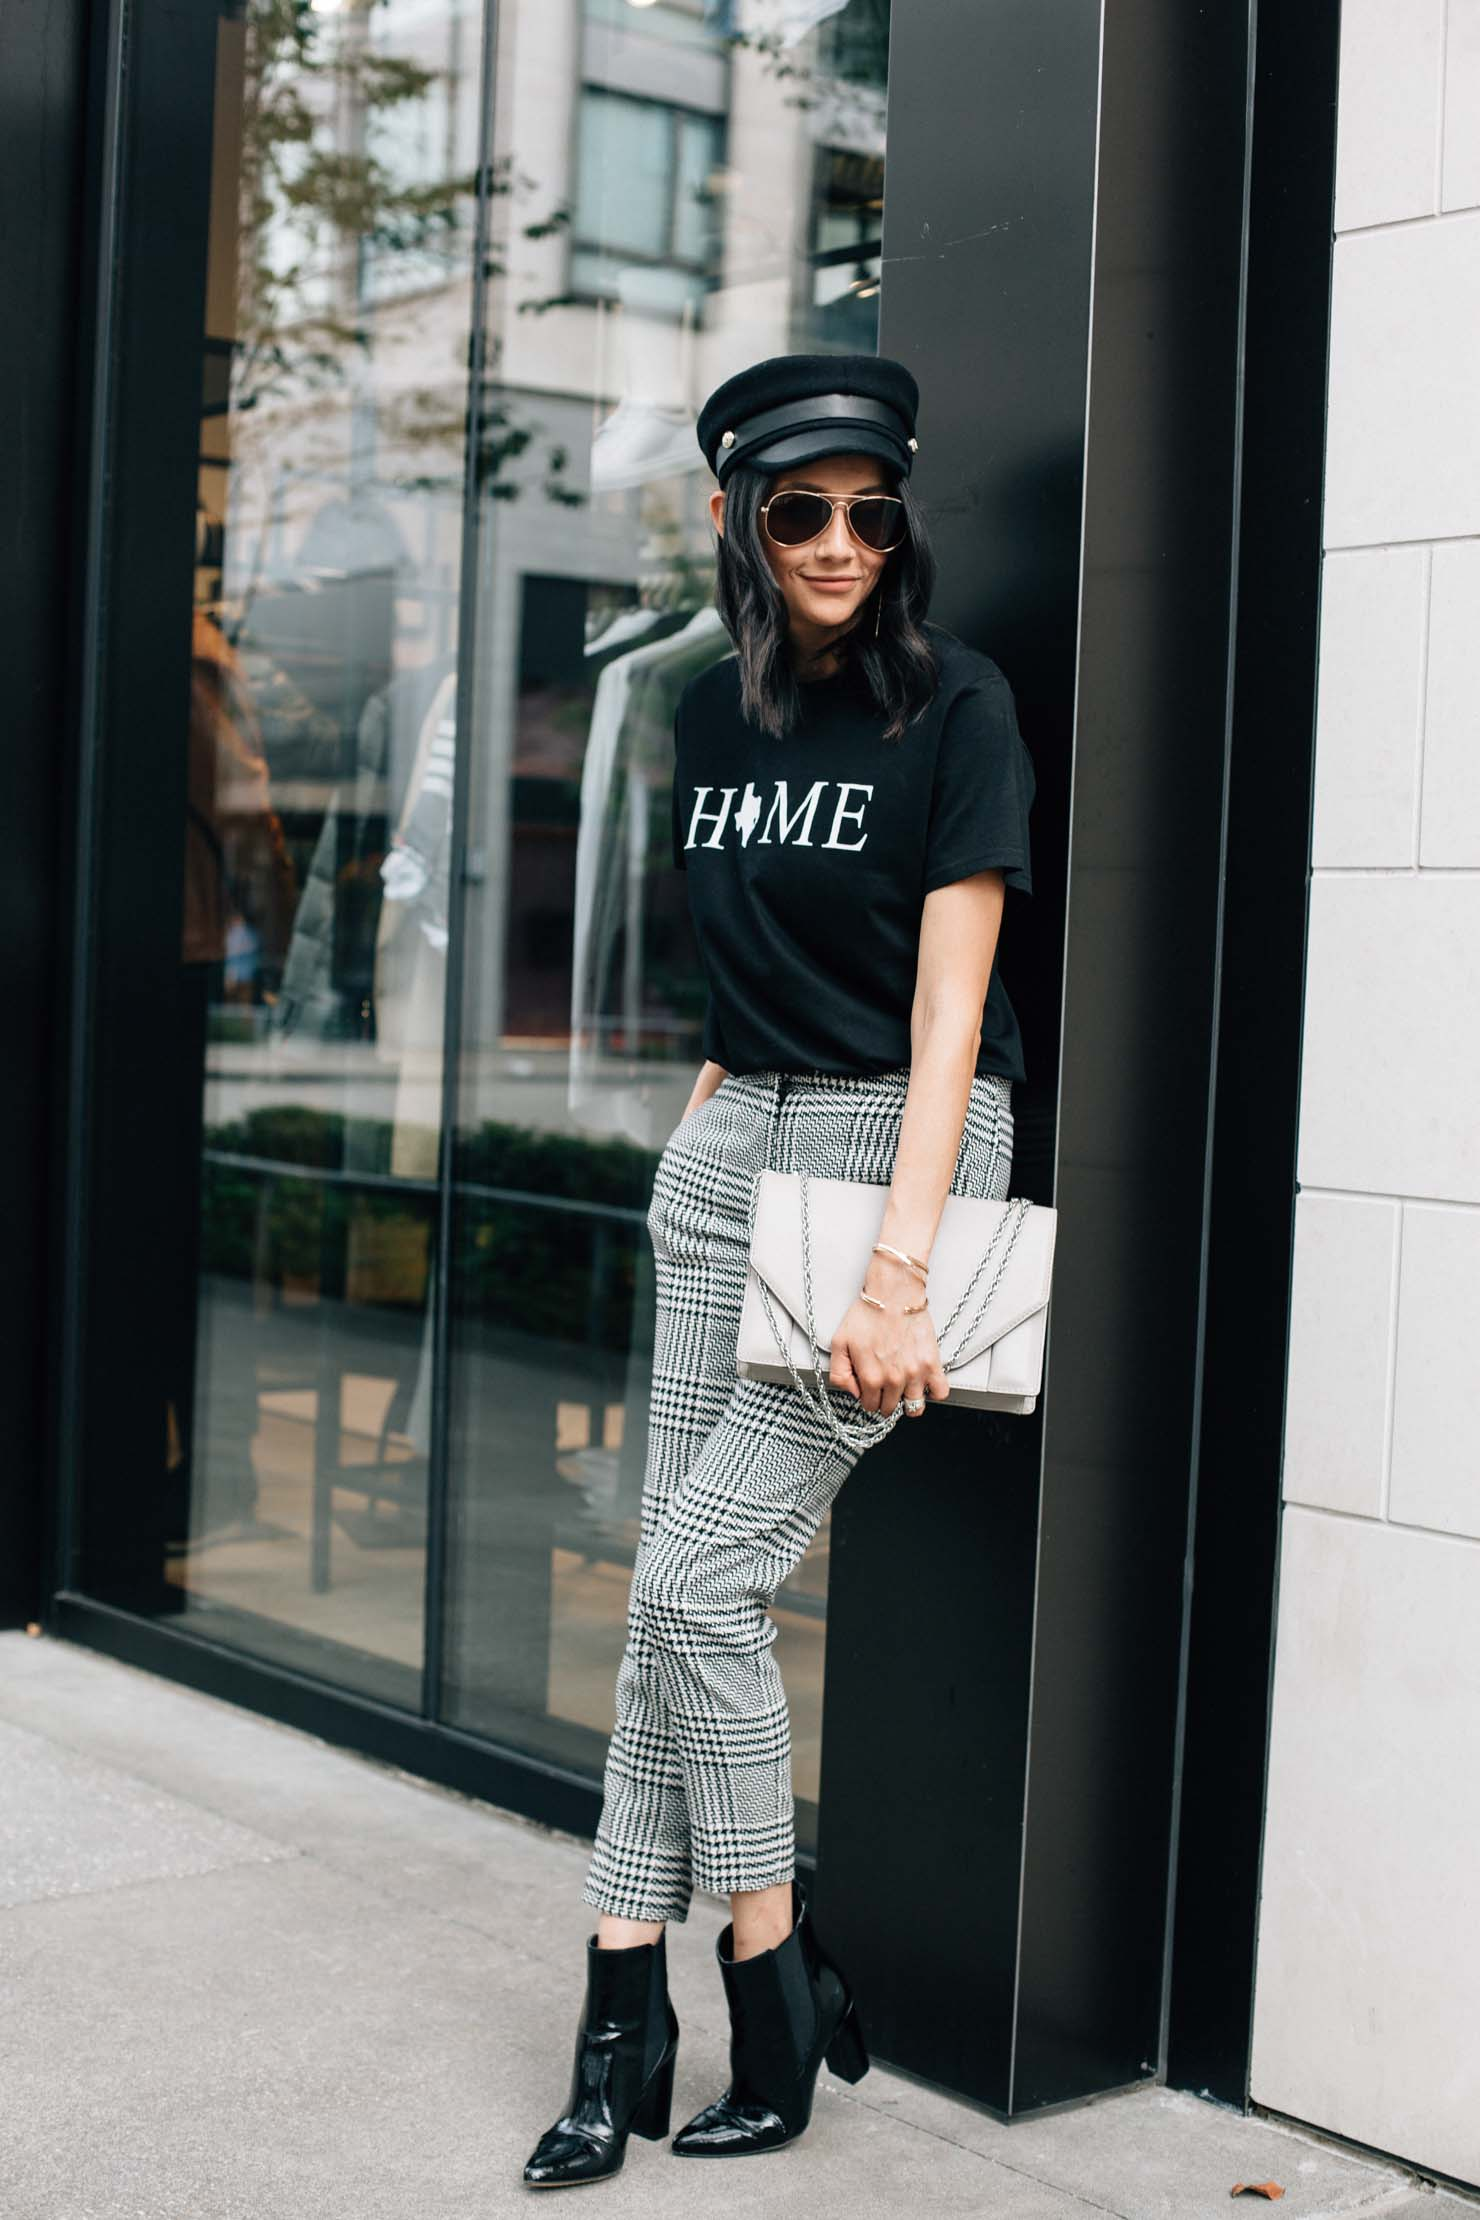 Lilly Beltran of Daily Craving blog in a chic fall outfit with black Chelsea boots, plaid pants and a baker boy hat